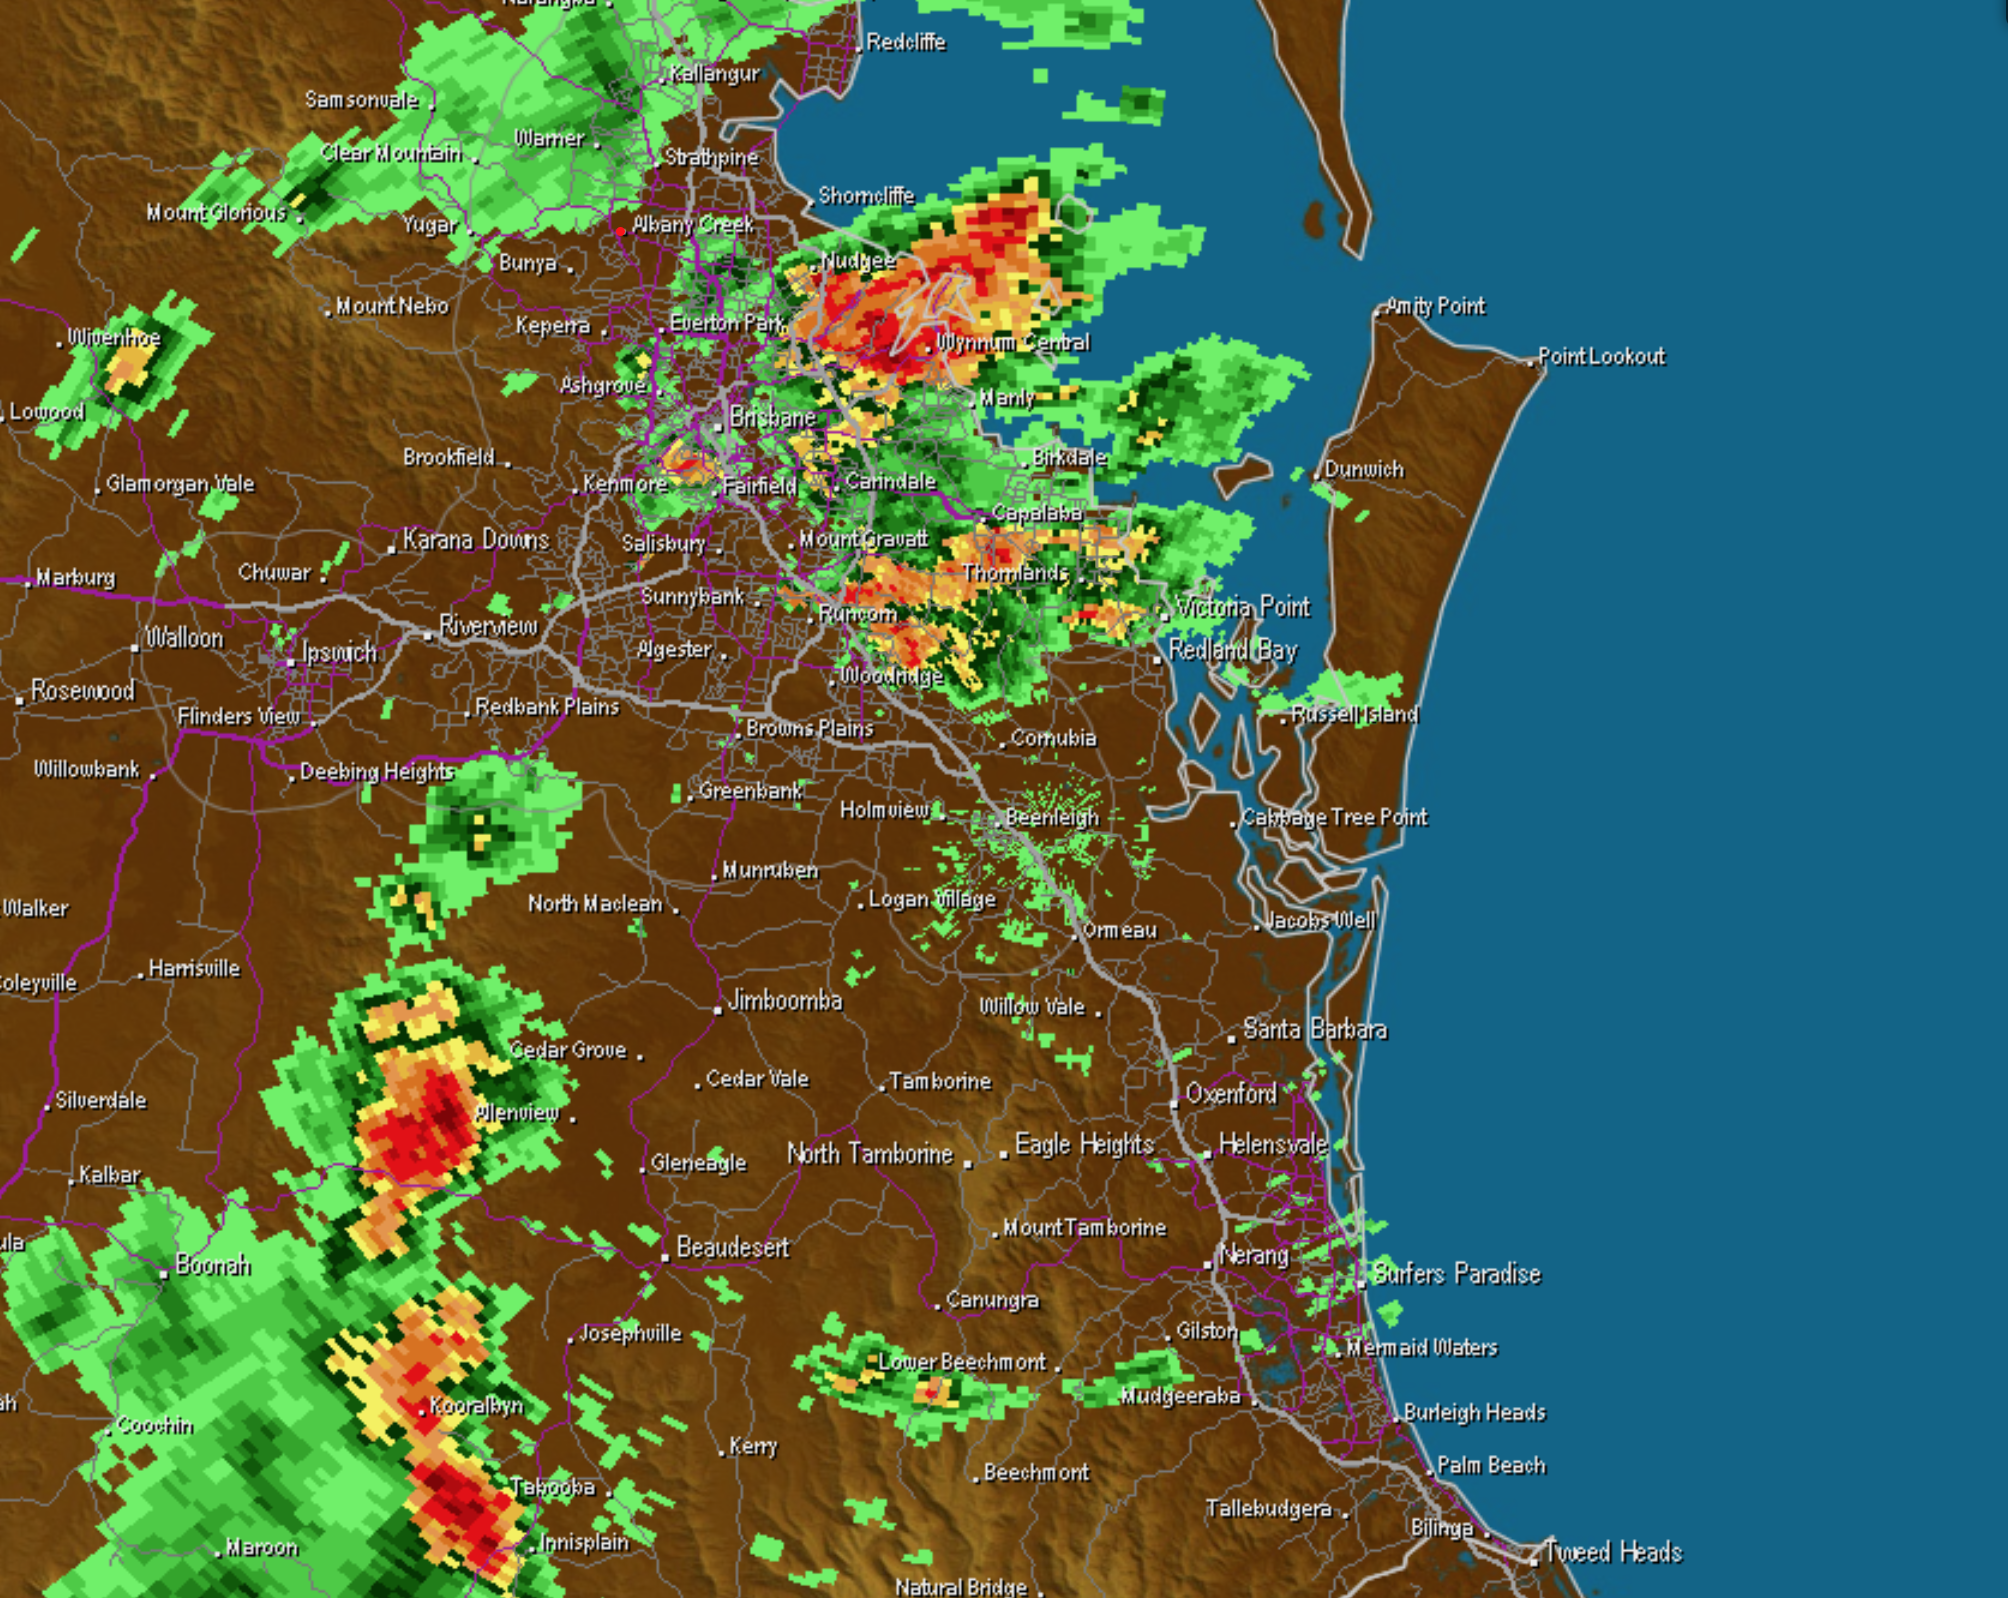 2pm radar view via Weatherzone showing the cell over Brisbane Airport